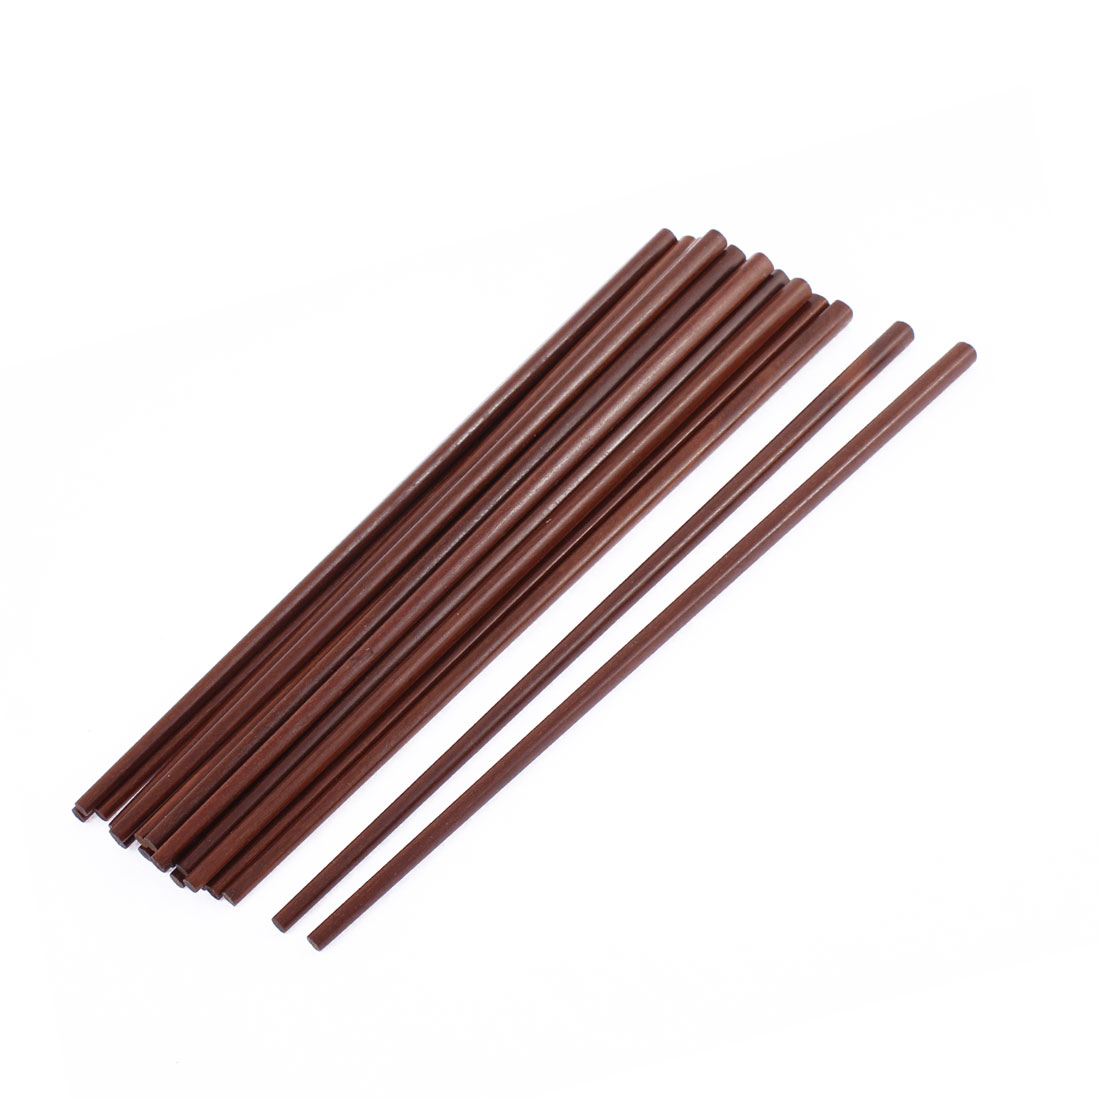 Restaurant Kitchen Hot Pot Chopsticks Coffee Color 10 Inch Length 10 Pairs